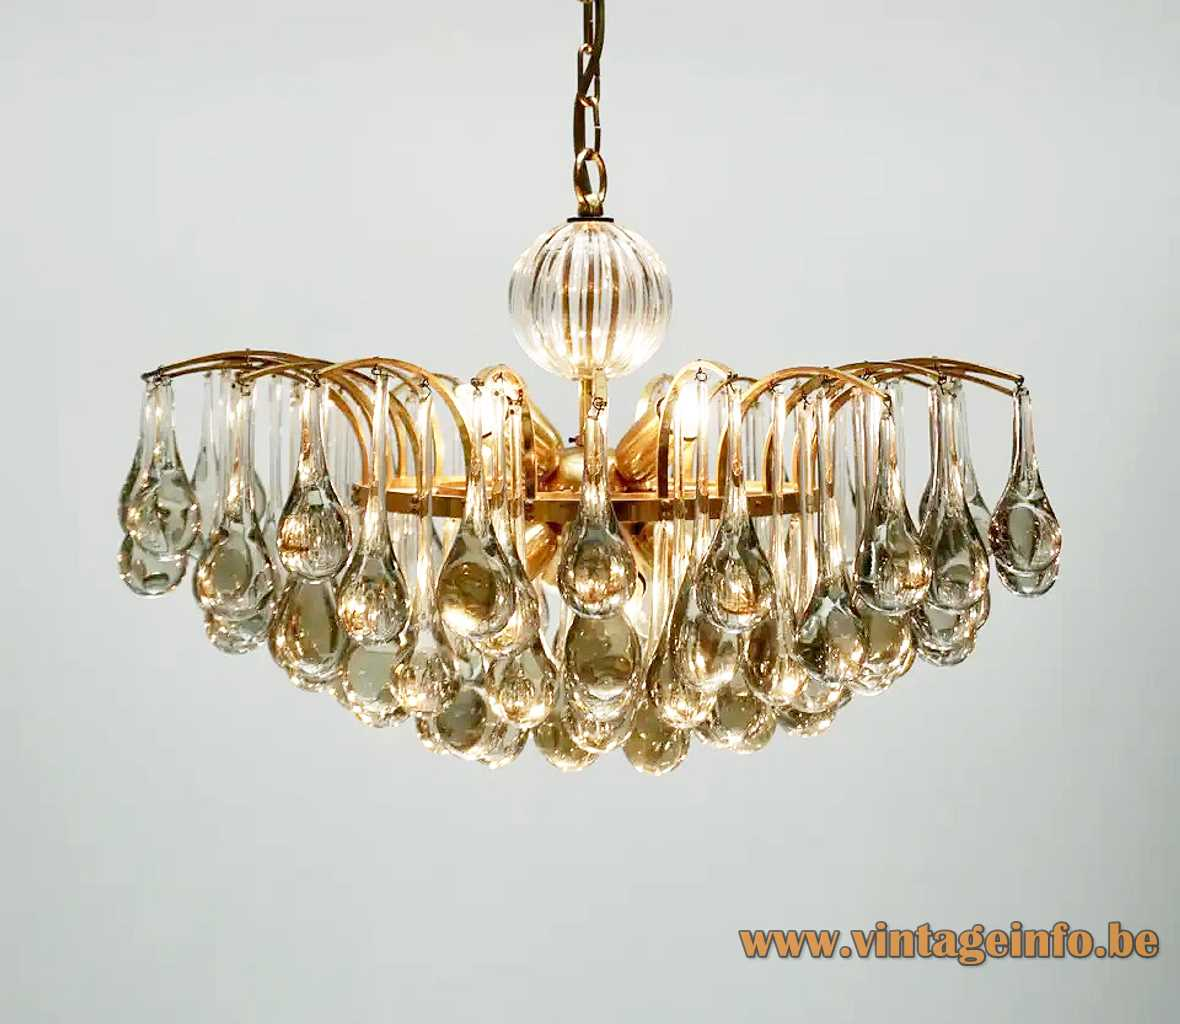 Palwa crystal teardrop chandelier curved brass rods & chain glas beads 1970s Palme & Walter Germany